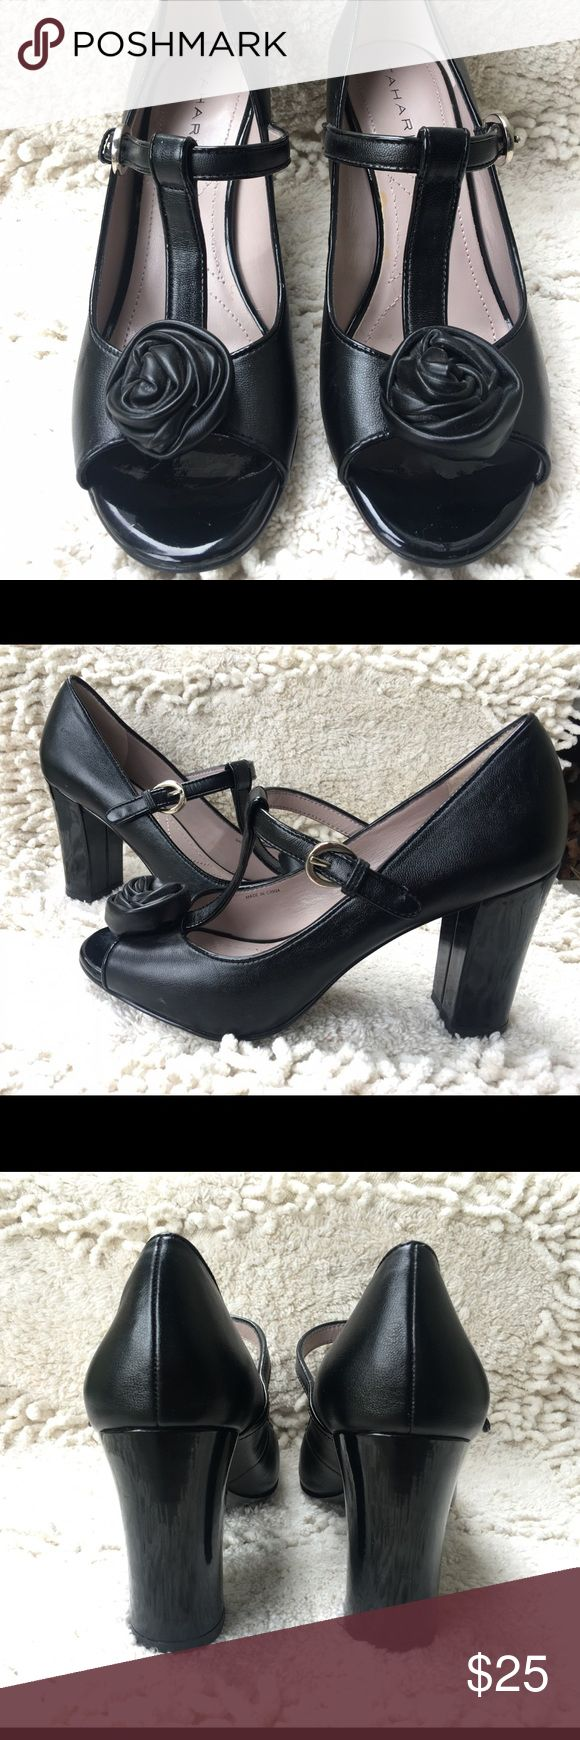 Tahari May shoes in 6M Black Mary Jane shoes (May) with rose detail at toe. 3 inch block patent leather heels. In excellent condition. Tahari Shoes Heels